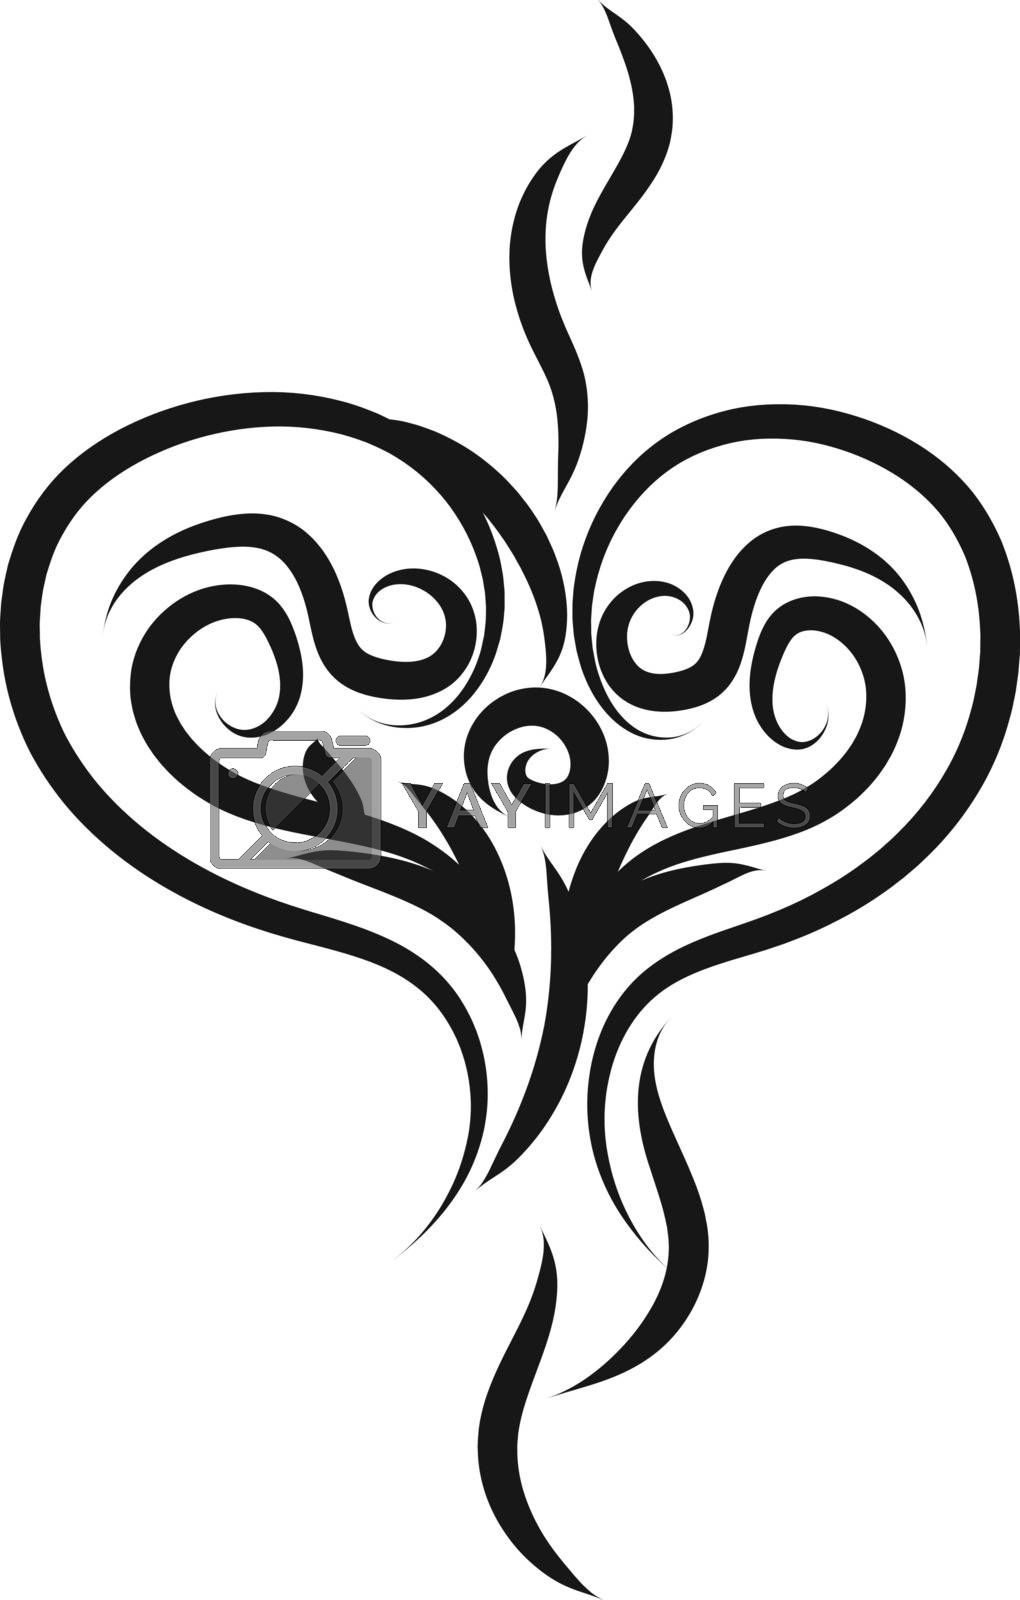 Heart tattoo sketch, illustration, vector on white background.